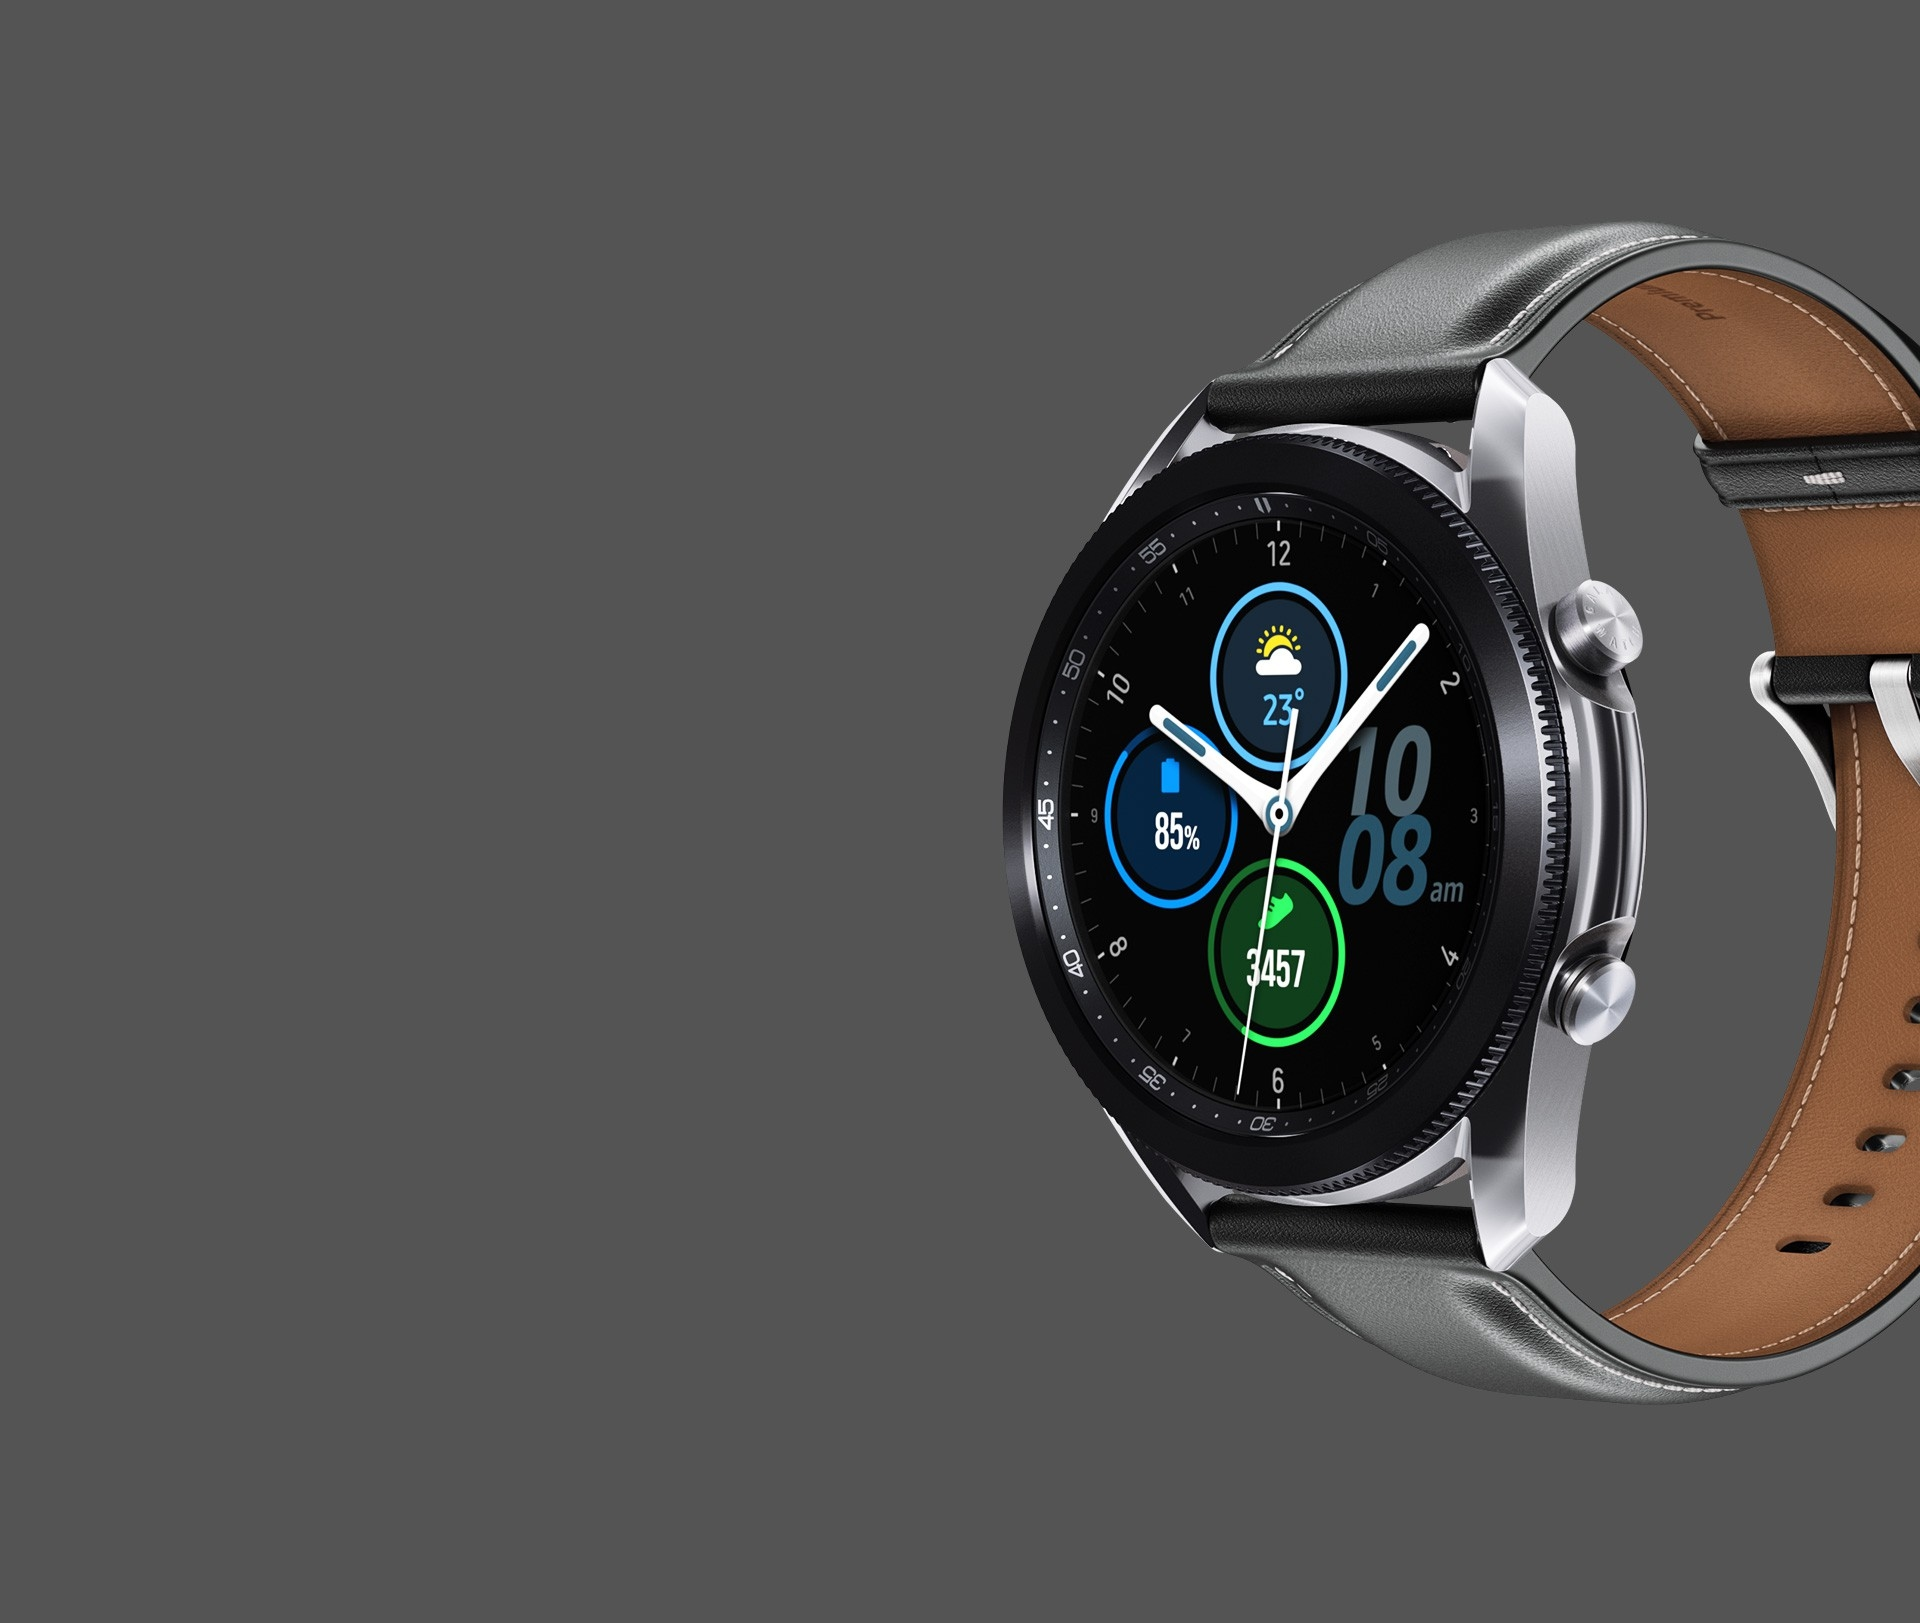 Description: 45mm Galaxy Watch3 in Mystic Silver with an Analog Modular Watch Face seen from an angle